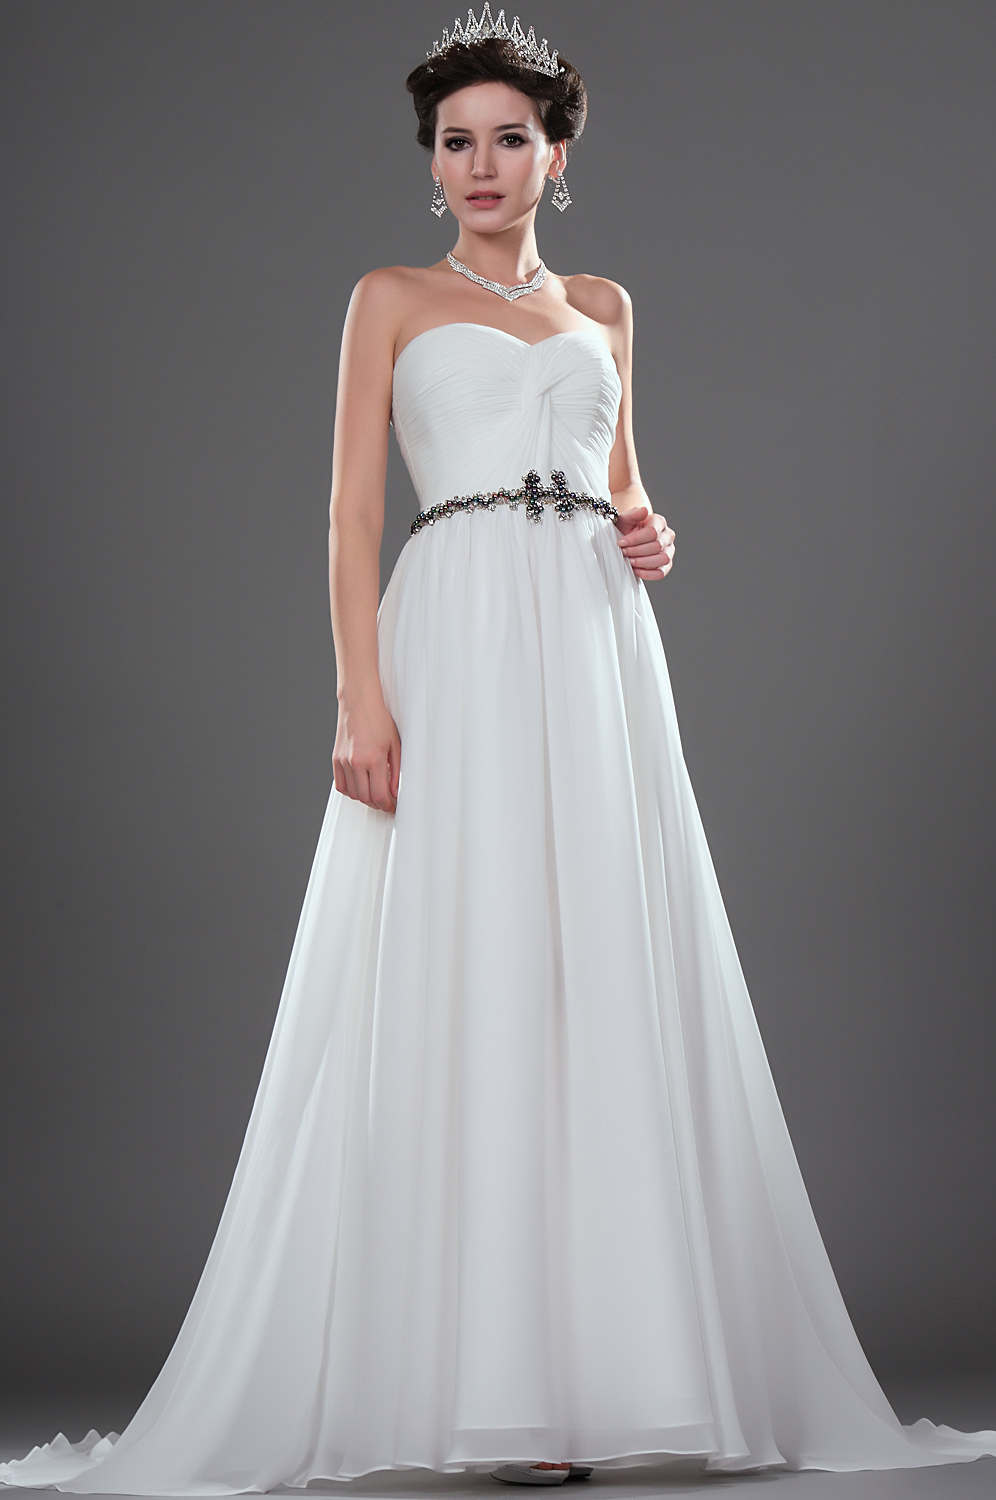 simple elegant wedding dresses edressit simple yet strapless wedding dress 01111707 7482